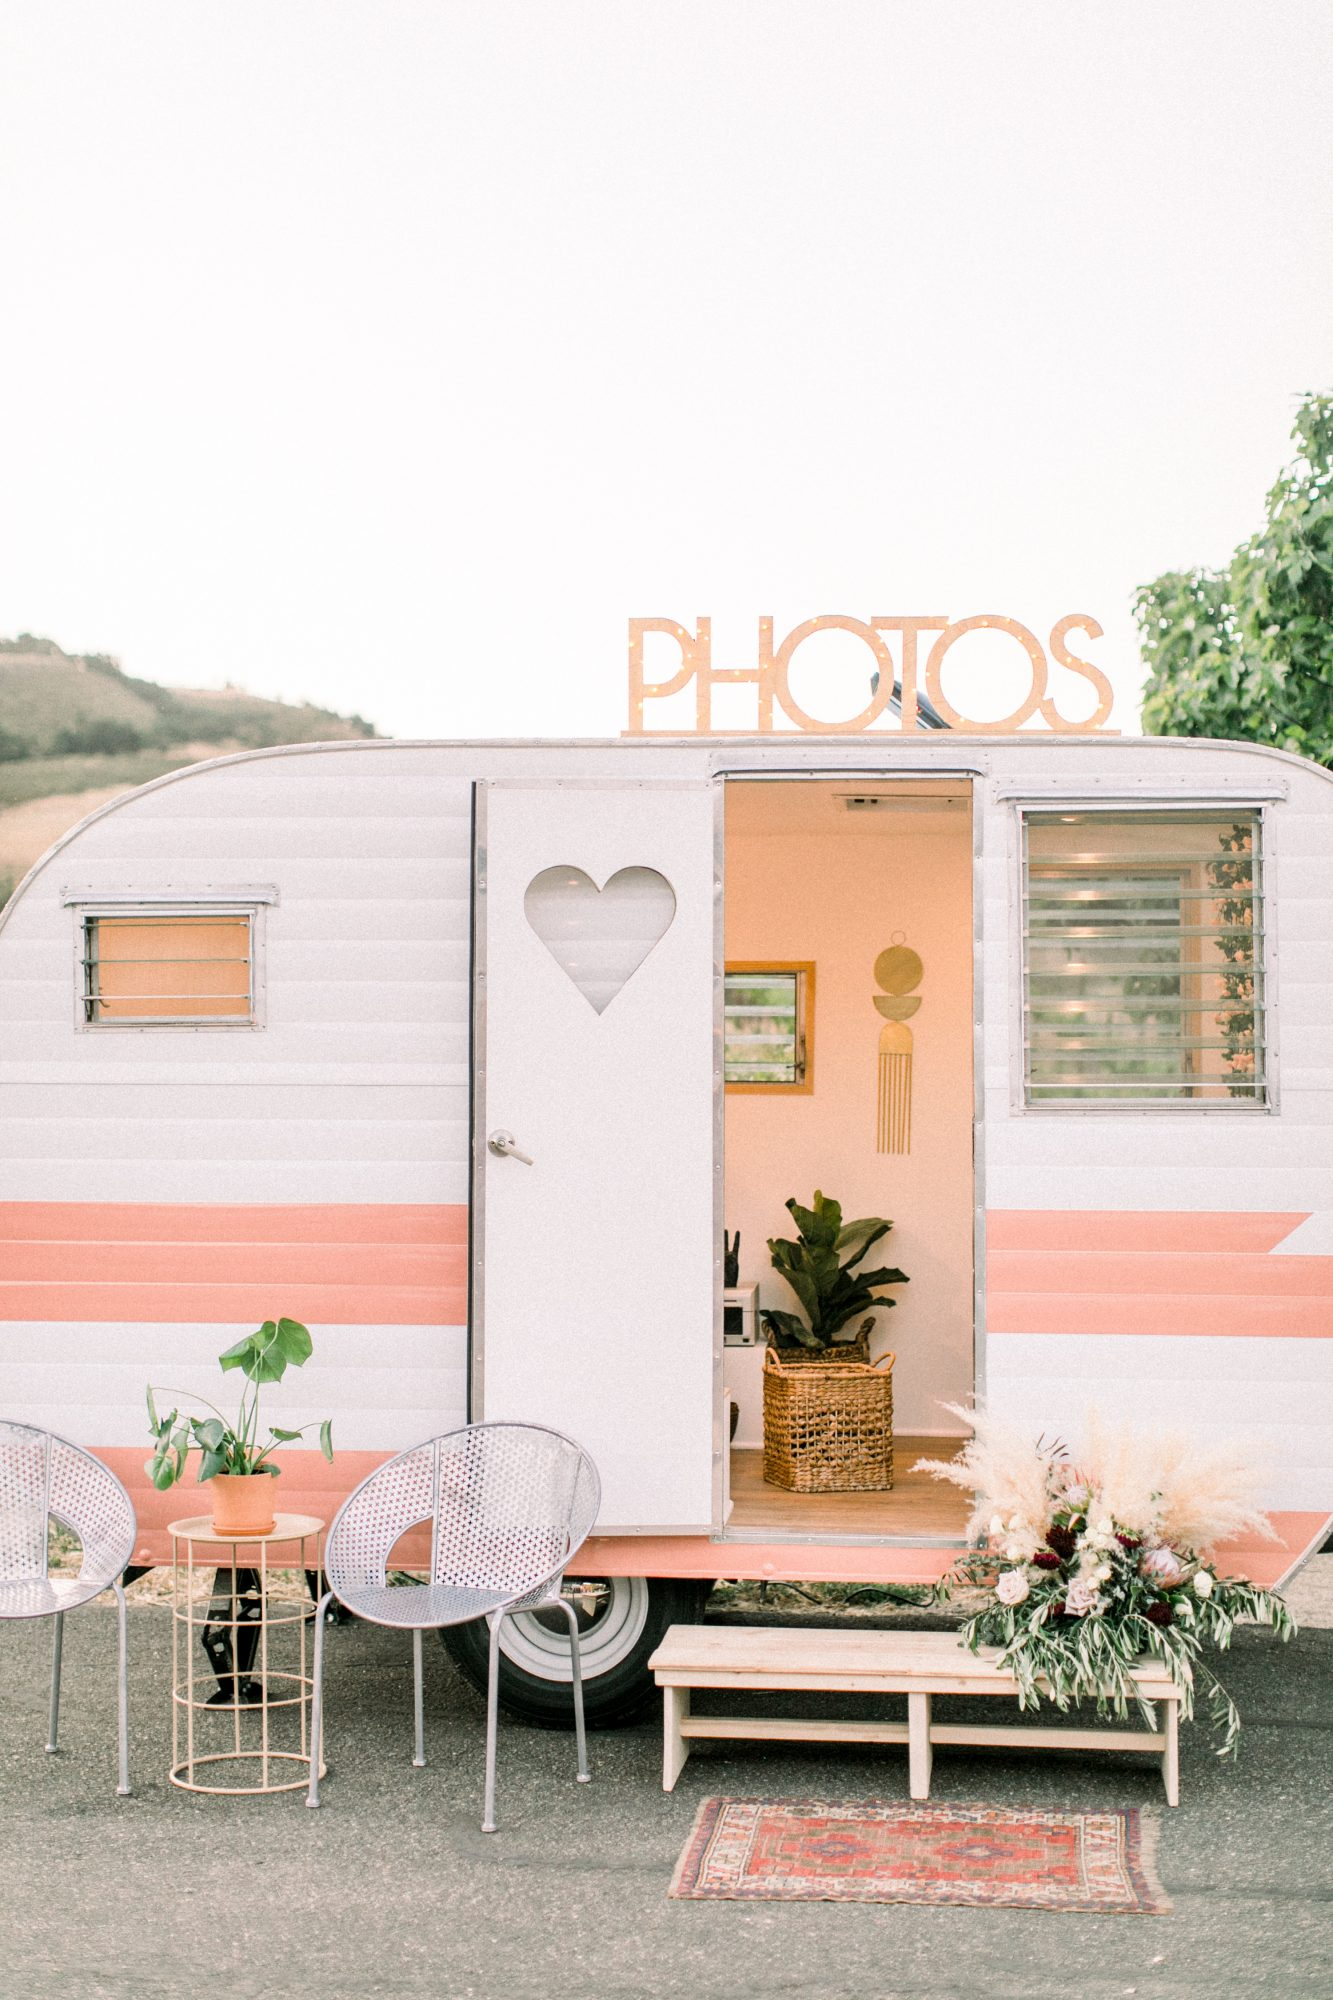 photo booth van with heart